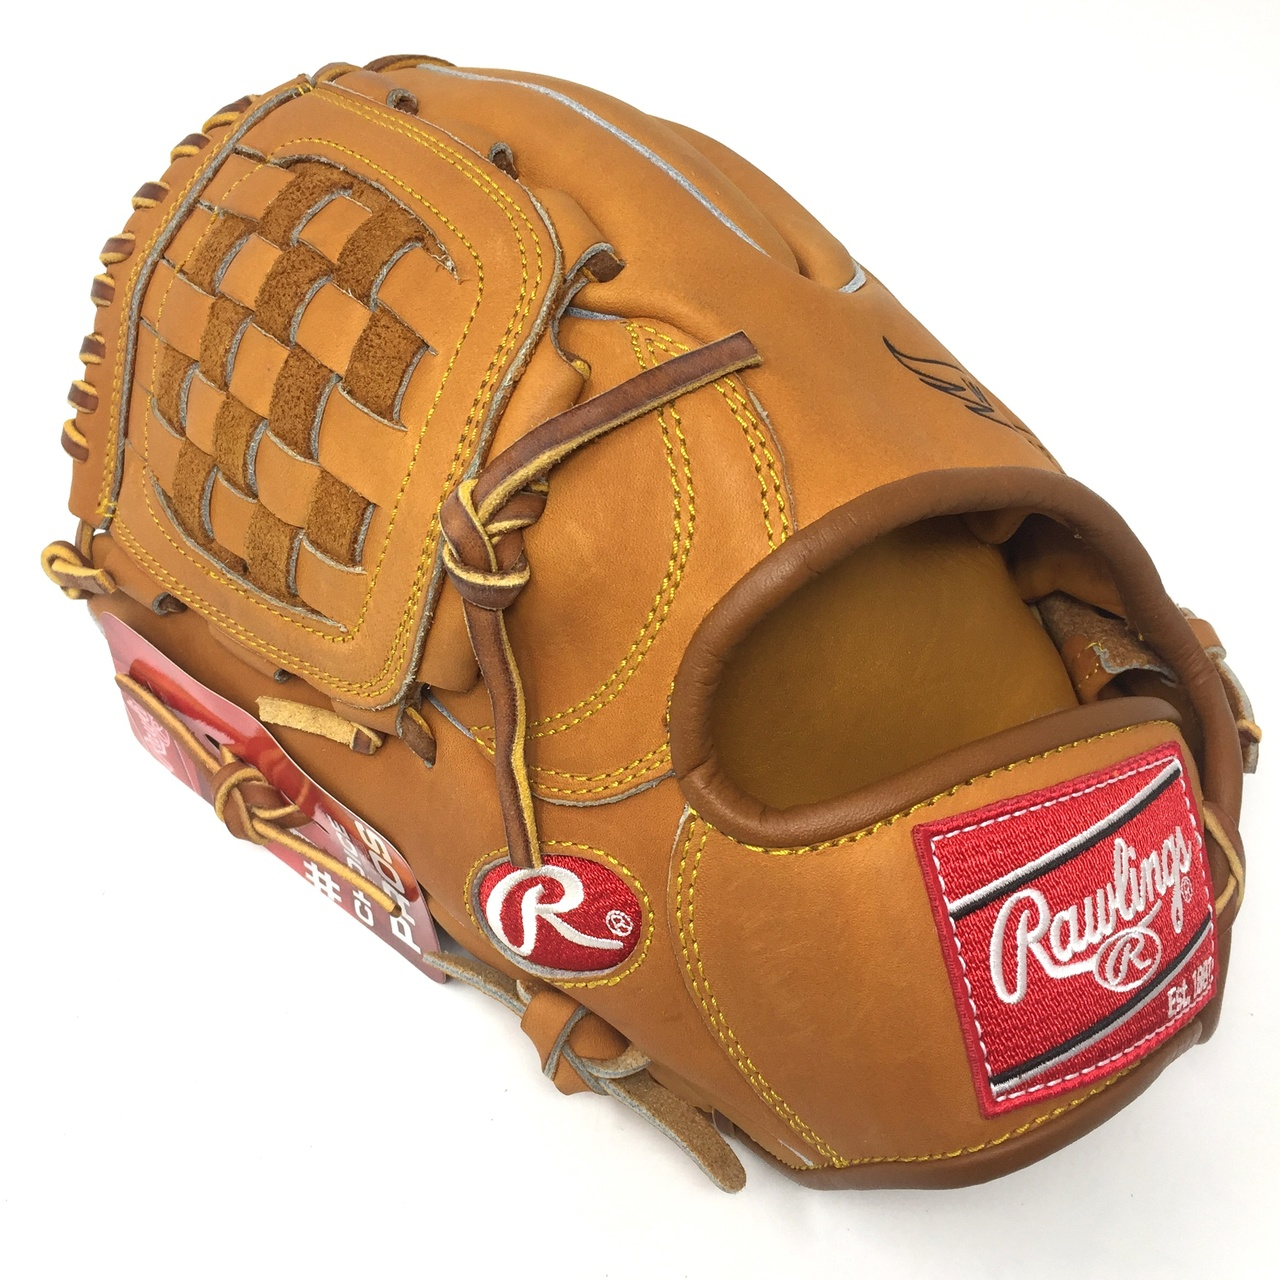 rawlings-heart-of-the-hide-pro6xbc-baseball-glove-left-handed-throw PRO6XBC-Left Handed Throw Rawlings New Rawlings Heart of the Hide PRO6XBC Baseball Glove Left Handed Throw